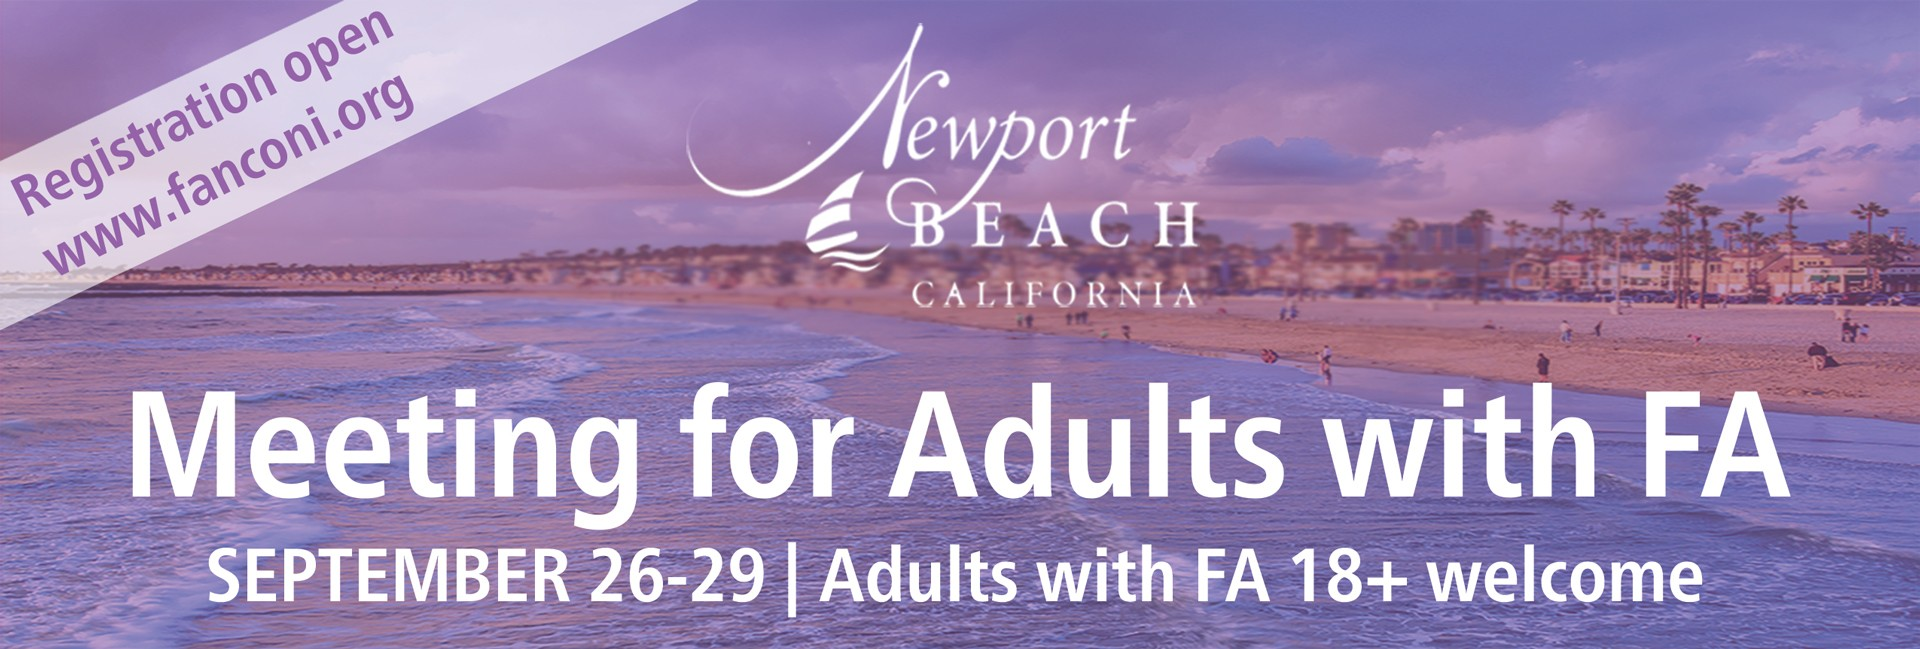 Meeting for Adults with FA